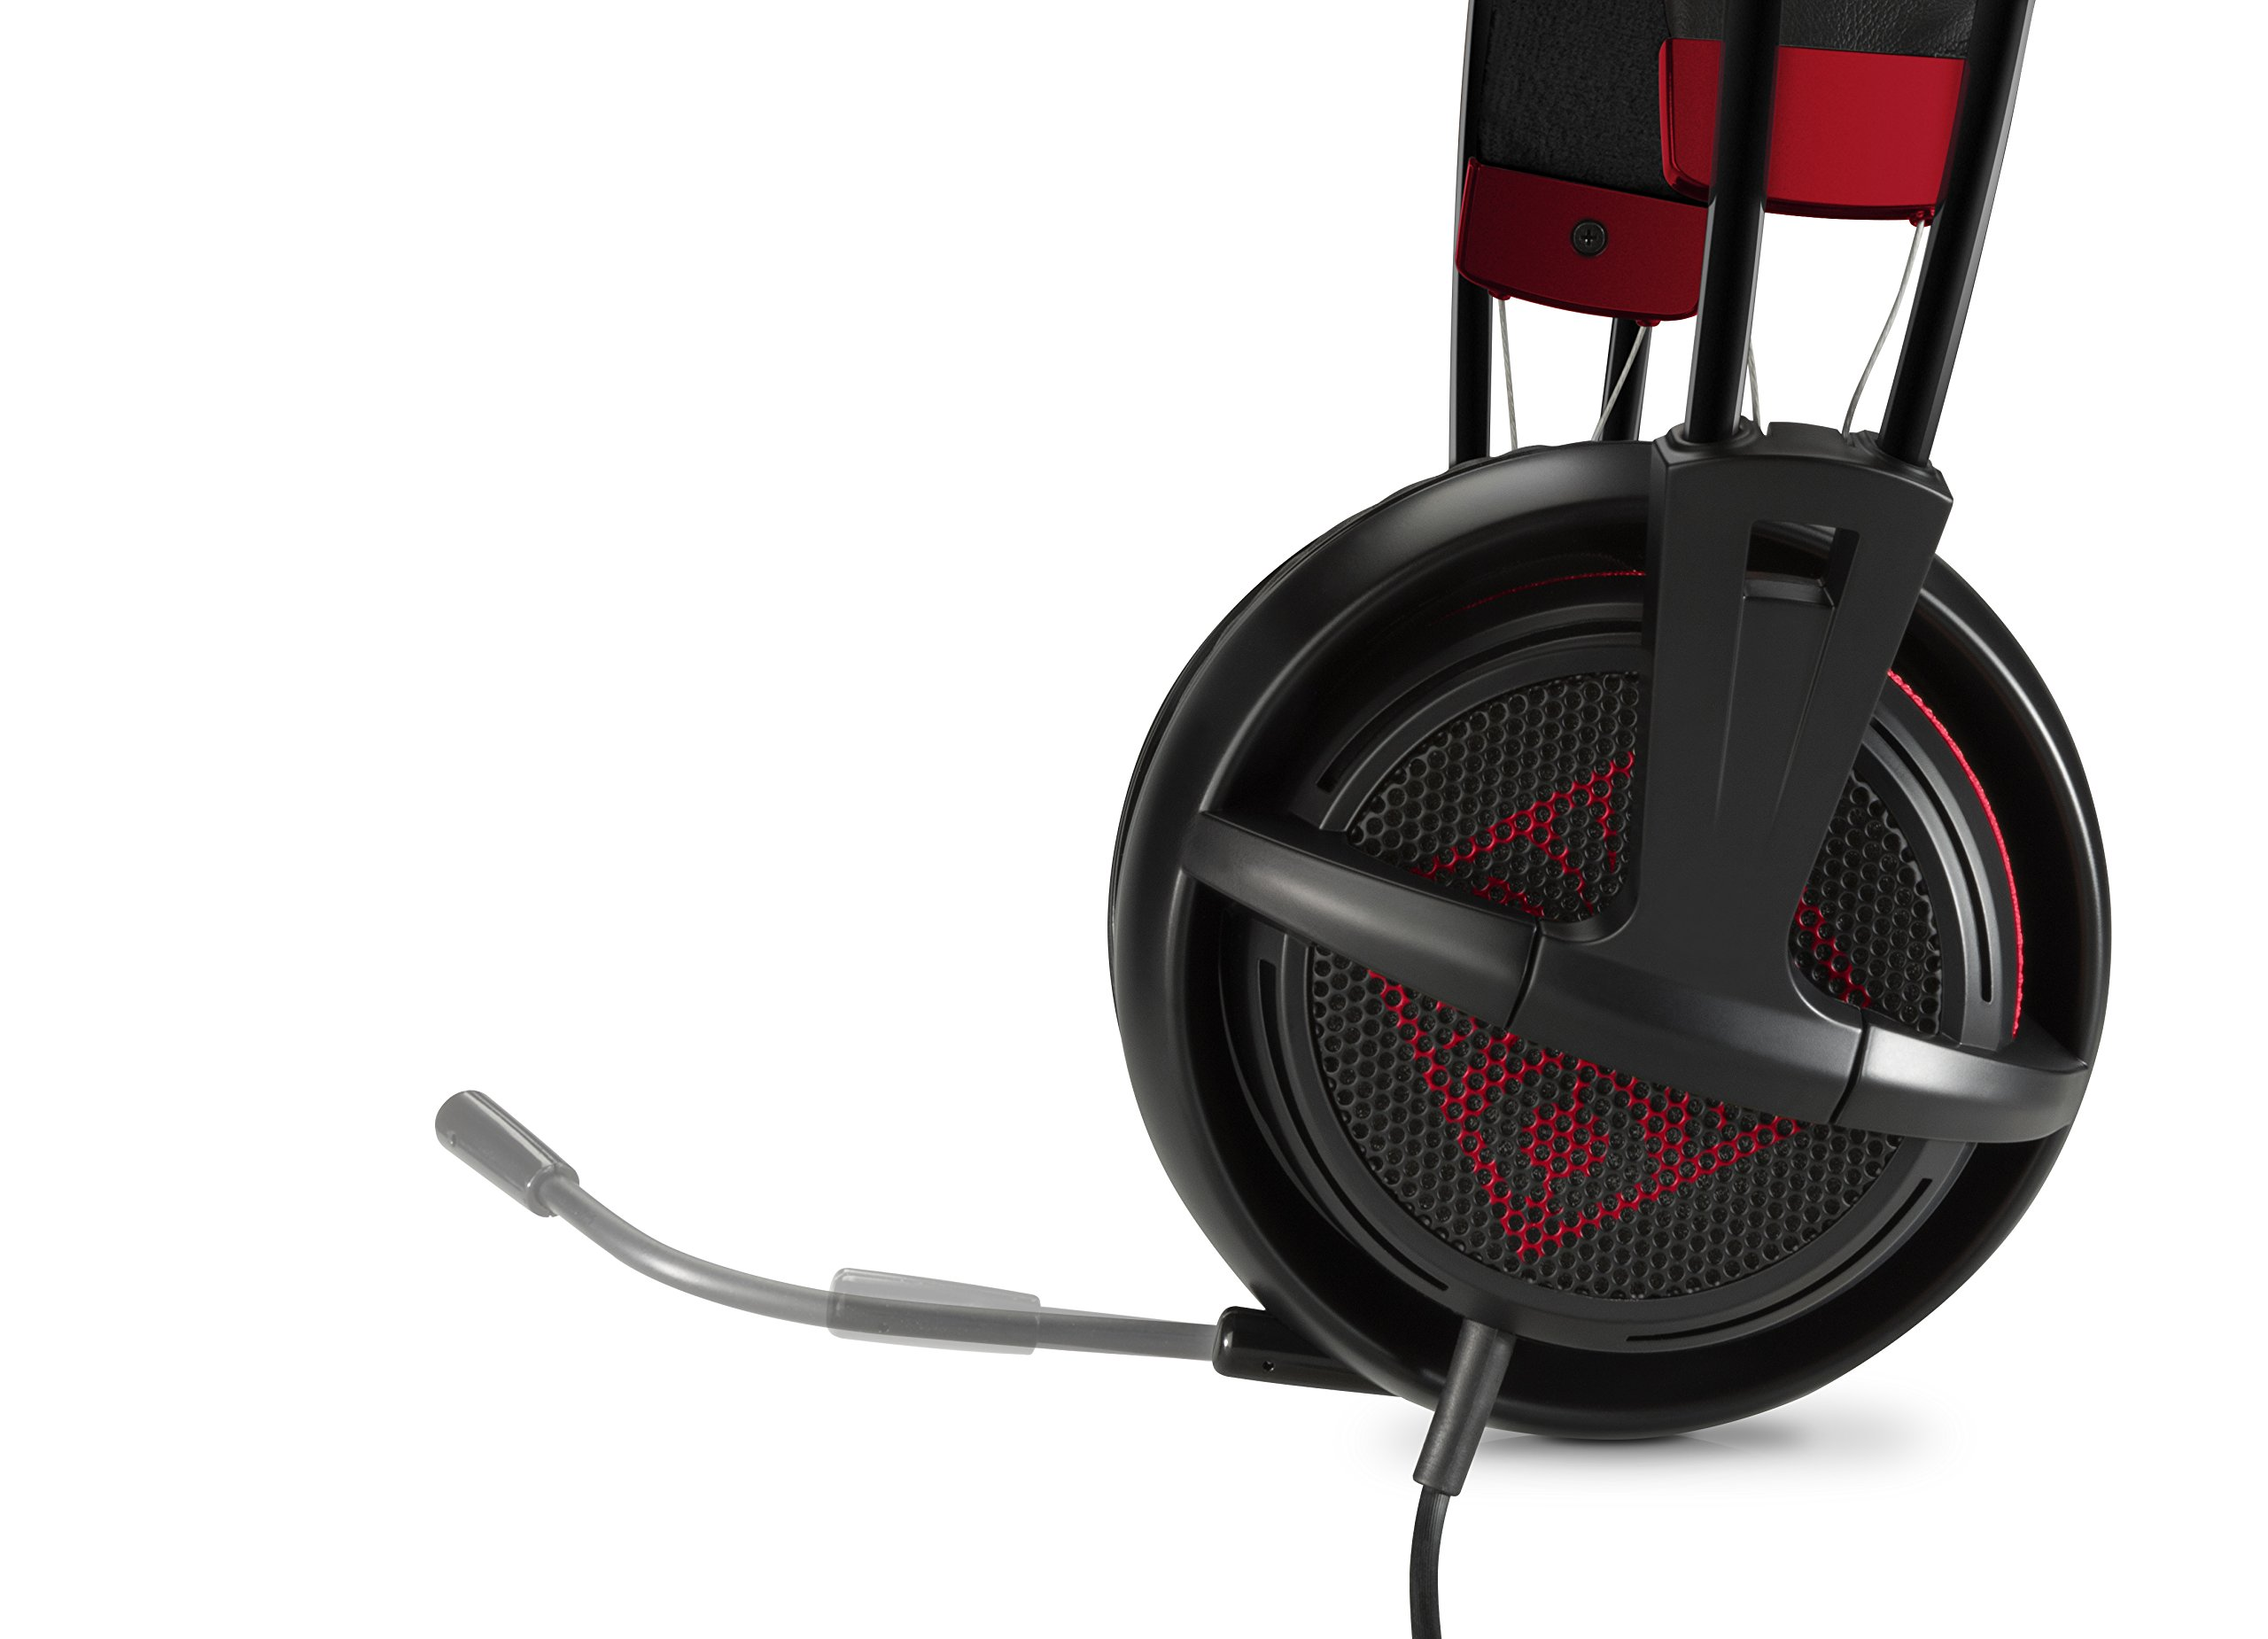 OMEN by HP Wired Gaming Headset with SteelSeries (Black) by HP (Image #5)